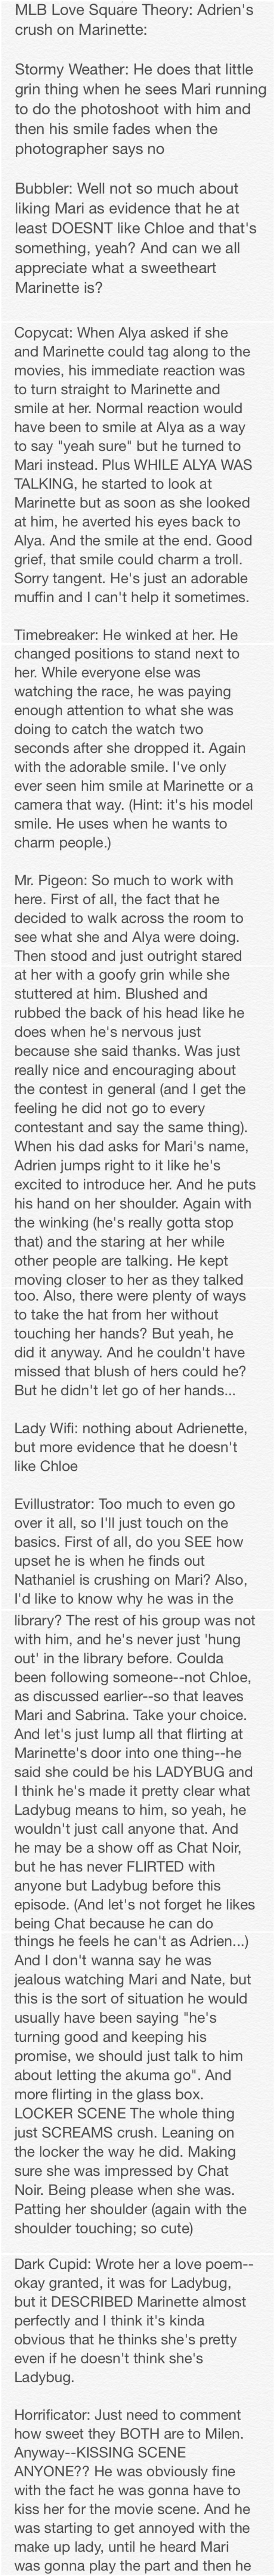 Adrien's Crush pt.1